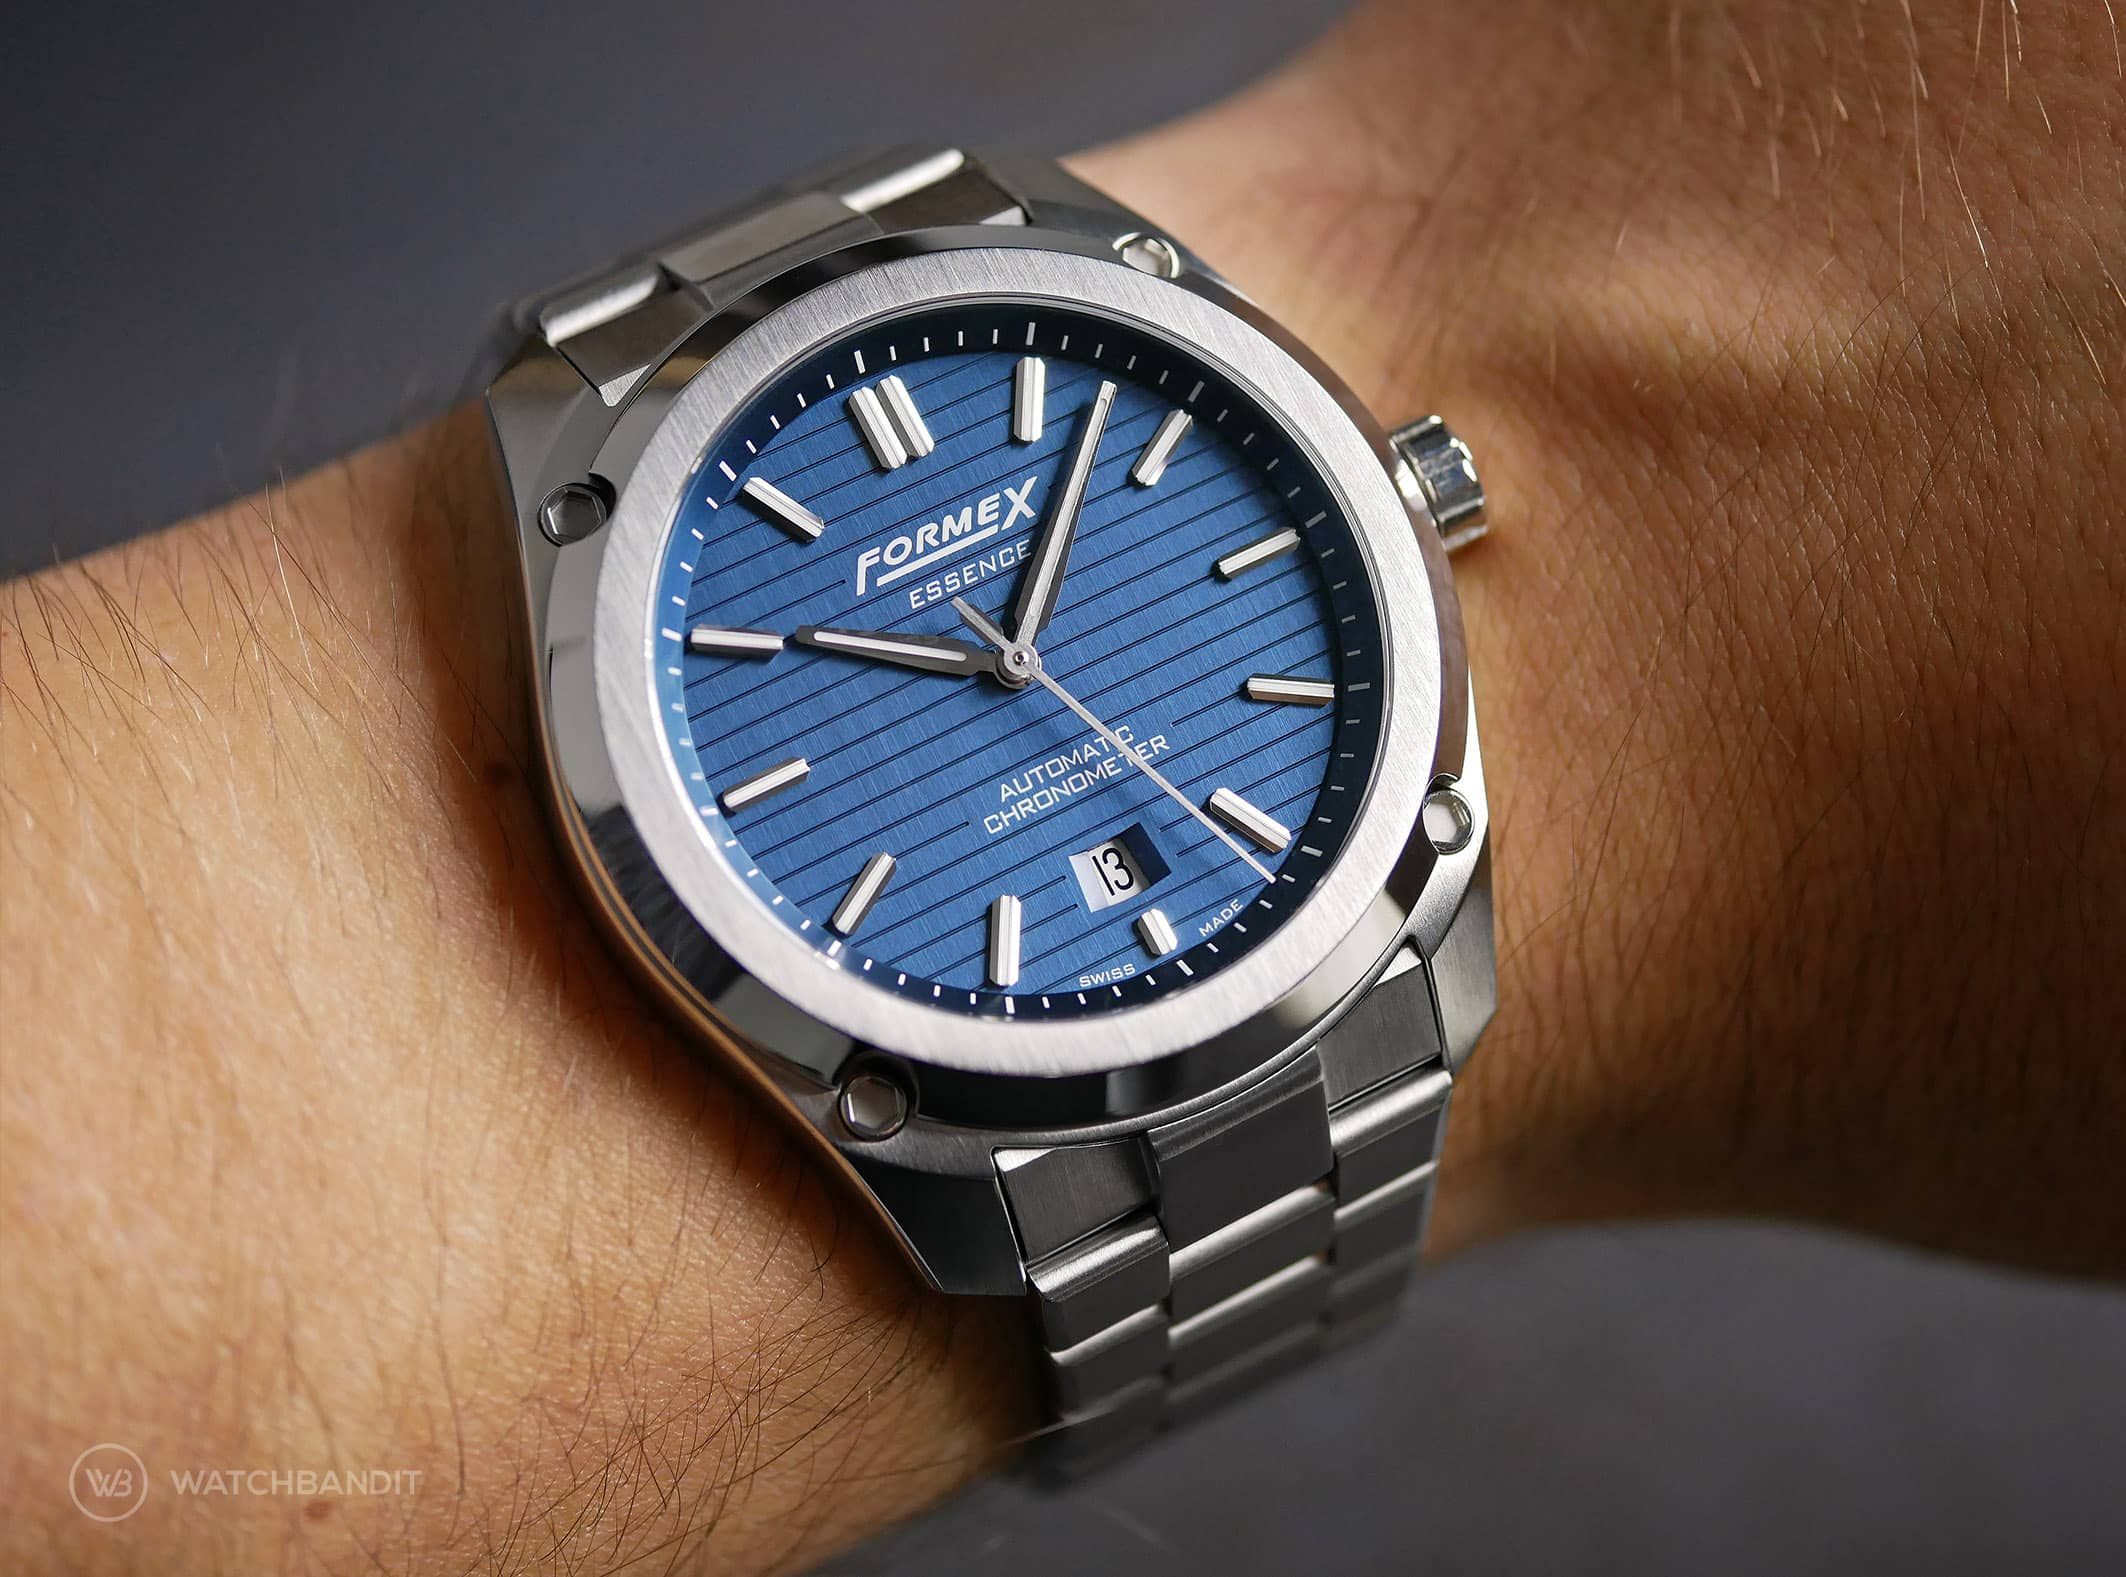 Formex Essence Chronometer Blue Wristshot